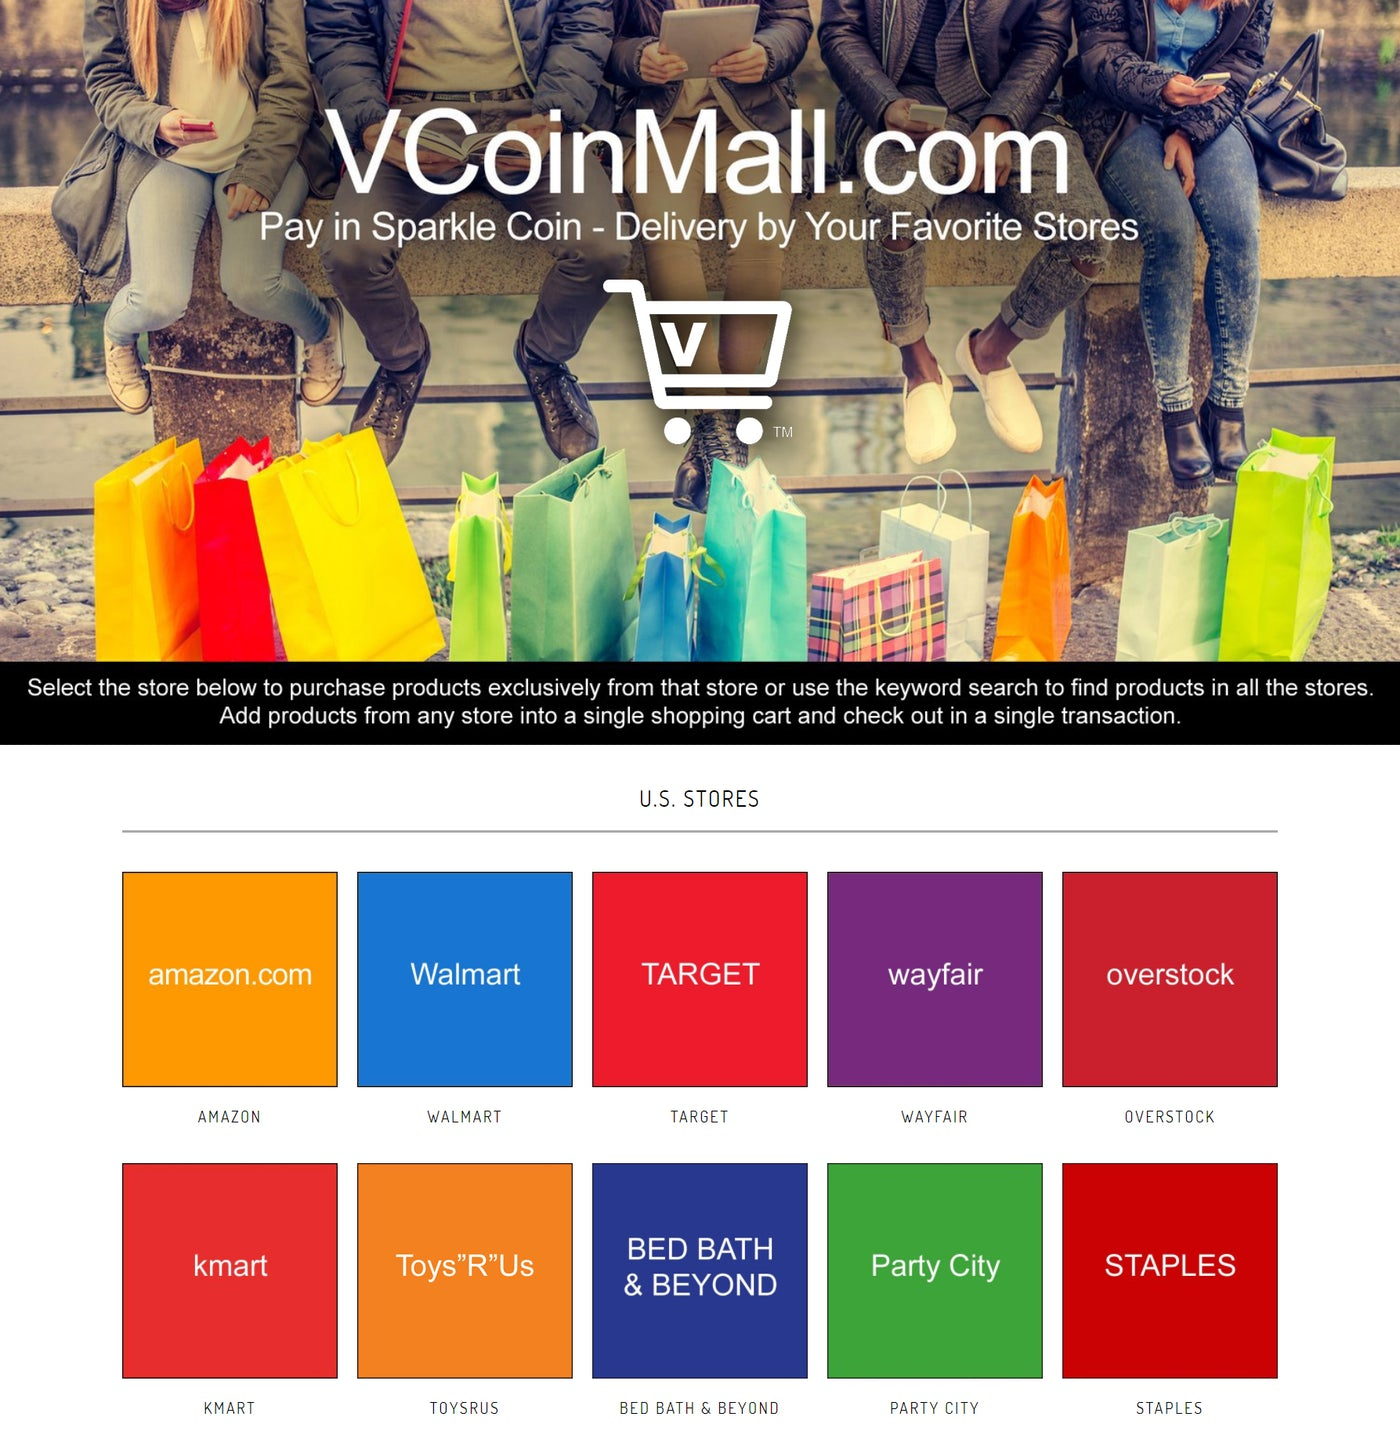 https://cdn.shopify.com/s/files/1/2217/4059/files/VCoinMall_Sparkle_Coin_site_1400x.jpg?v=1504592996